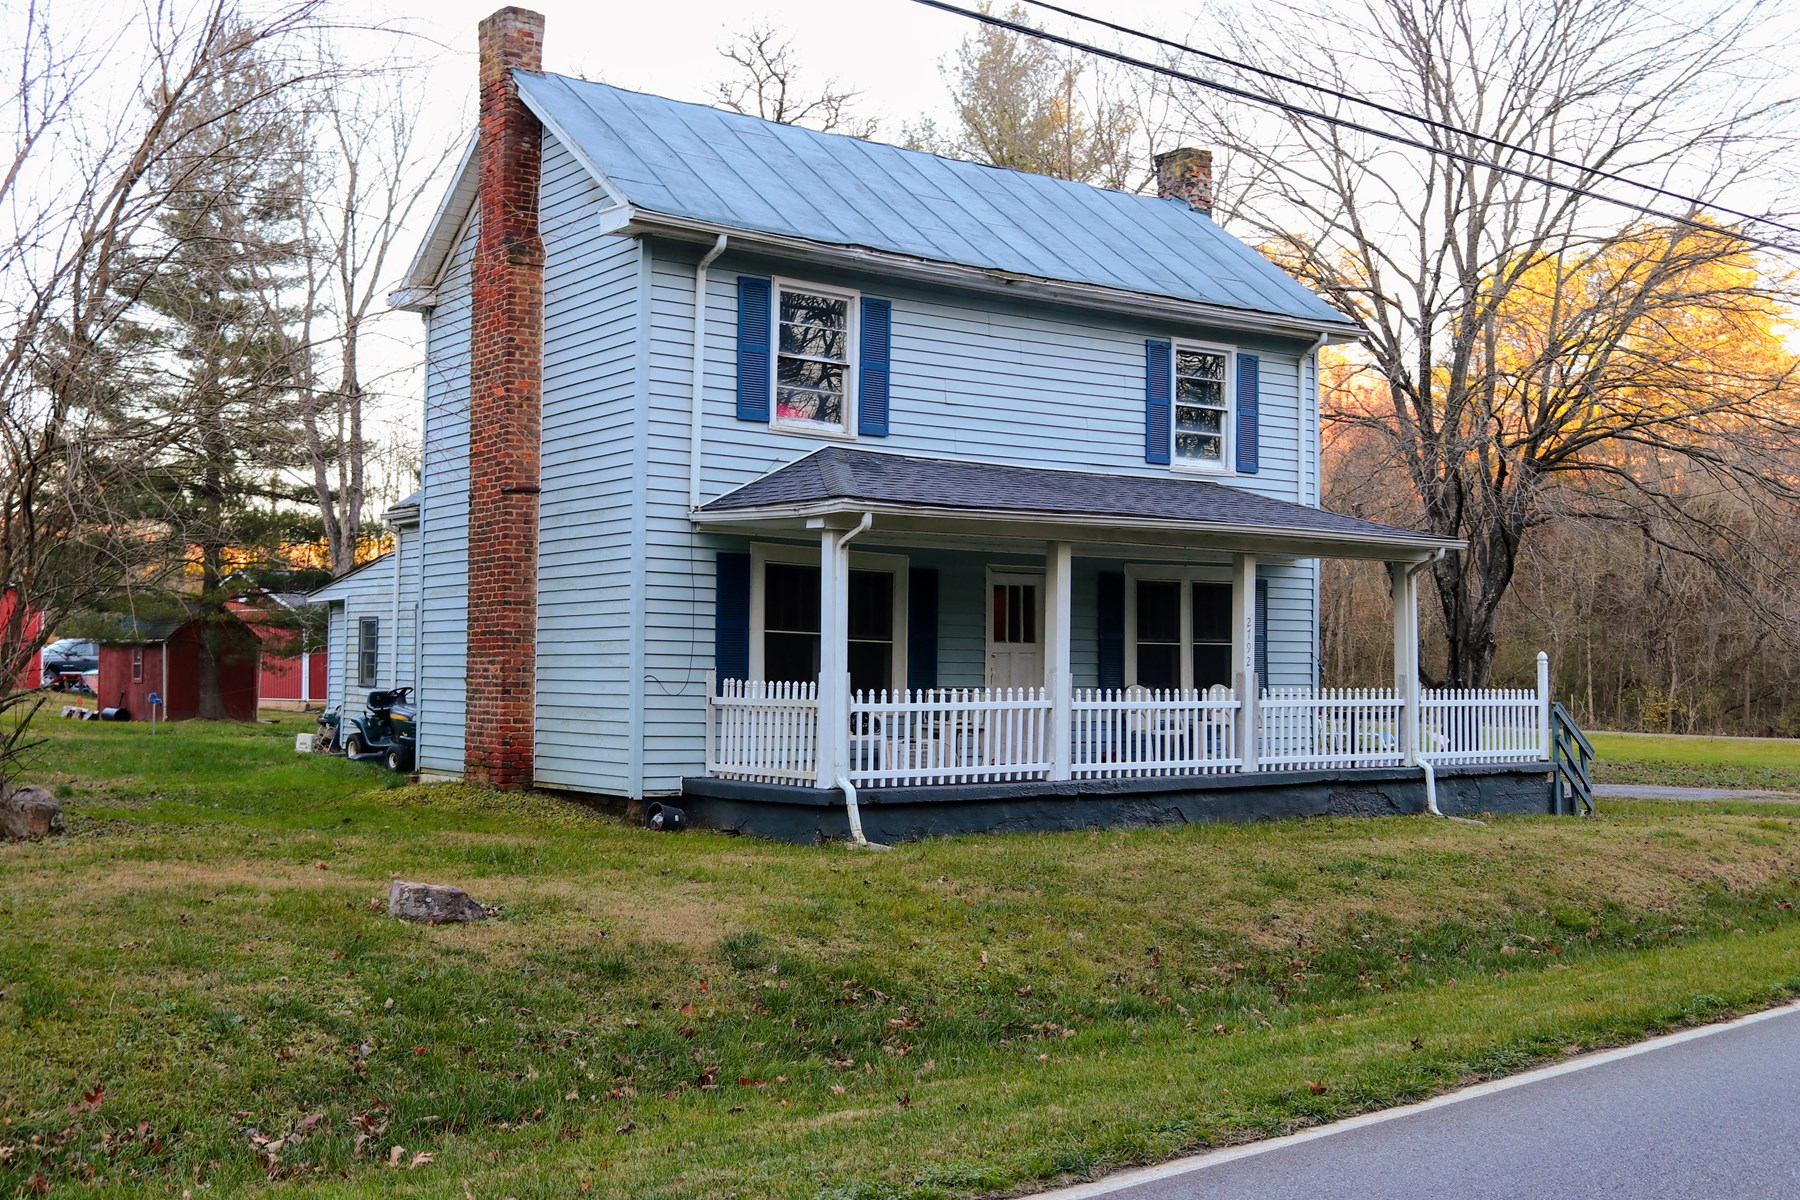 Investment Home for Sale in Roanoke County VA